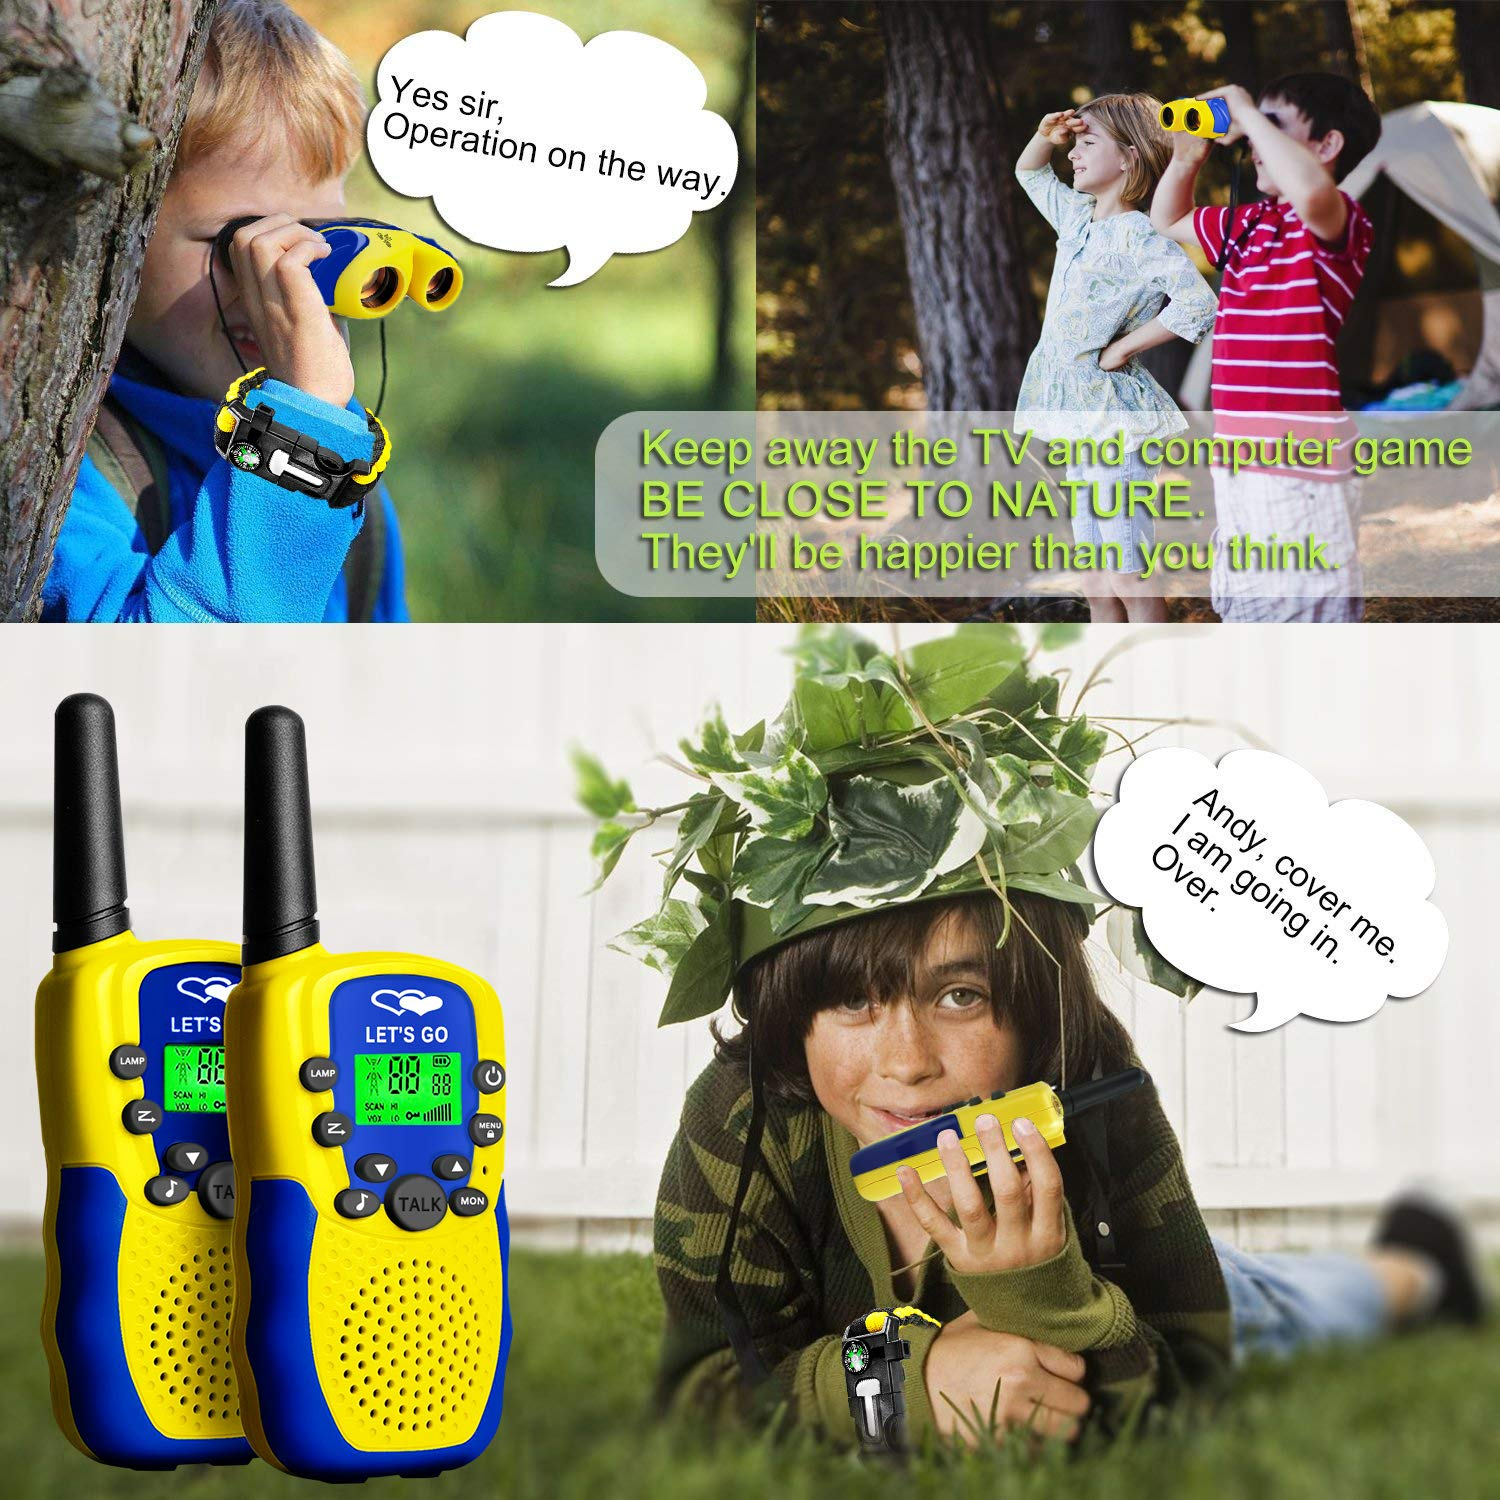 HODO Popular Outdoor Toys for 3-12 Year Old Boys, Long Range Walkie Talkies for Kids Toys for 3-12 Year Old Girls Gifts for 3-12 Year Old Boy Boy Toys Age 3-12 Girl Toys Gifts Age 3-12 HDHTS13 by HOdo (Image #2)